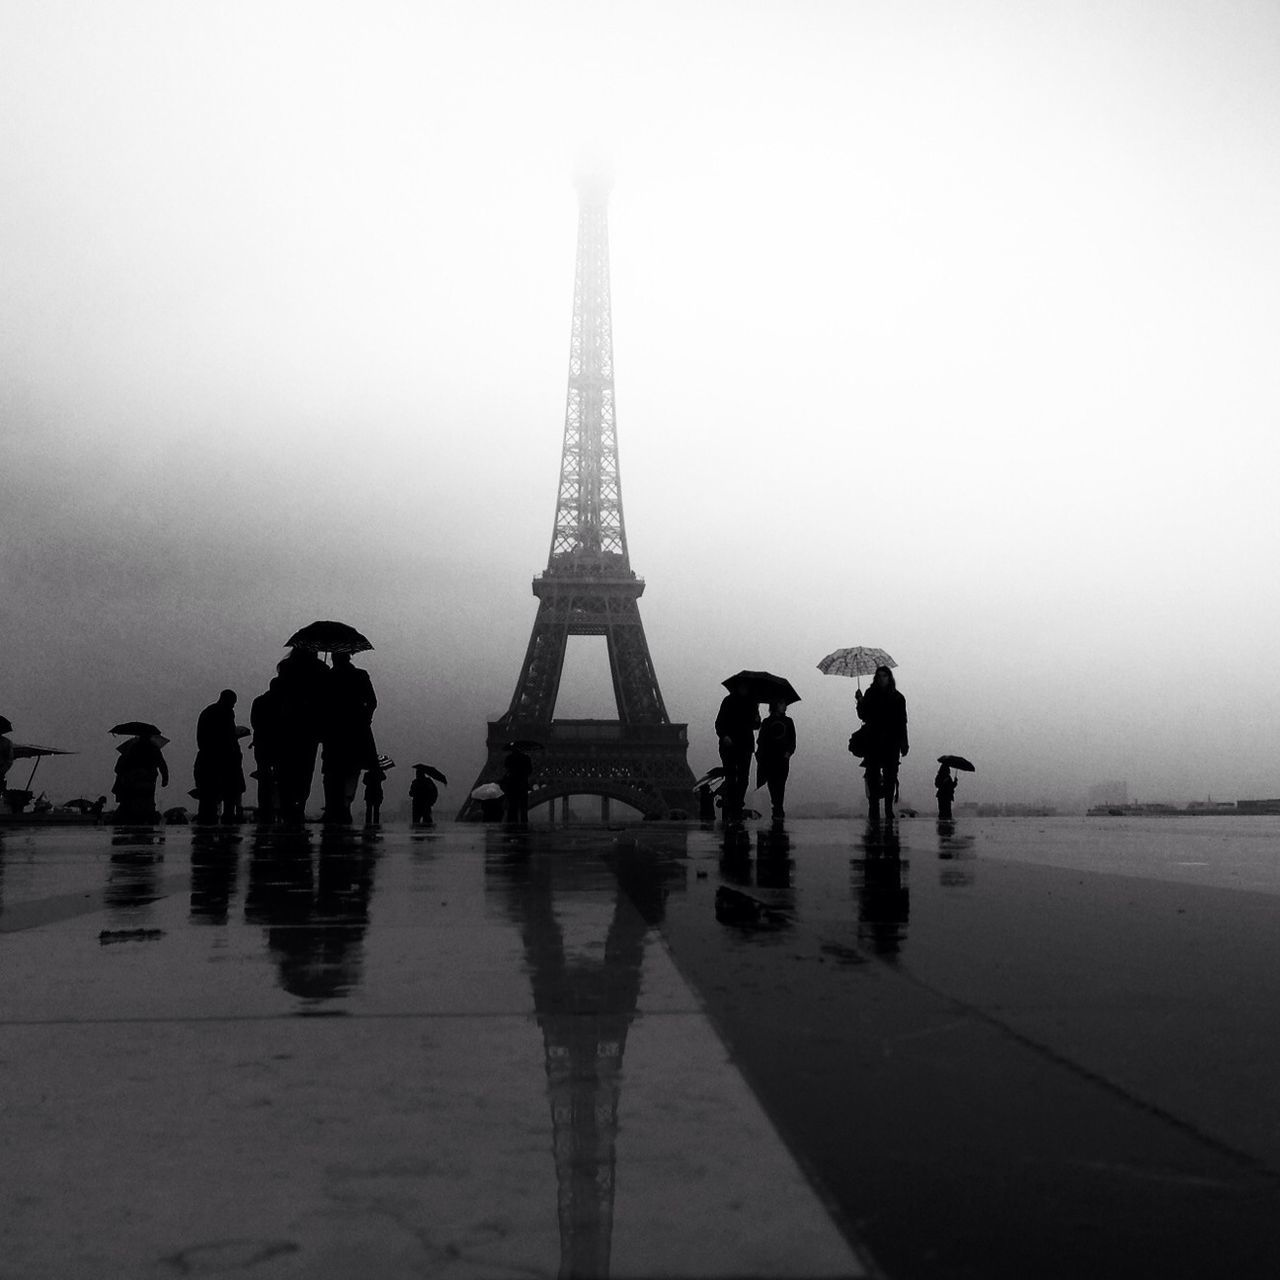 Silhouetted image of tourists at Eiffel Tower in rainy season